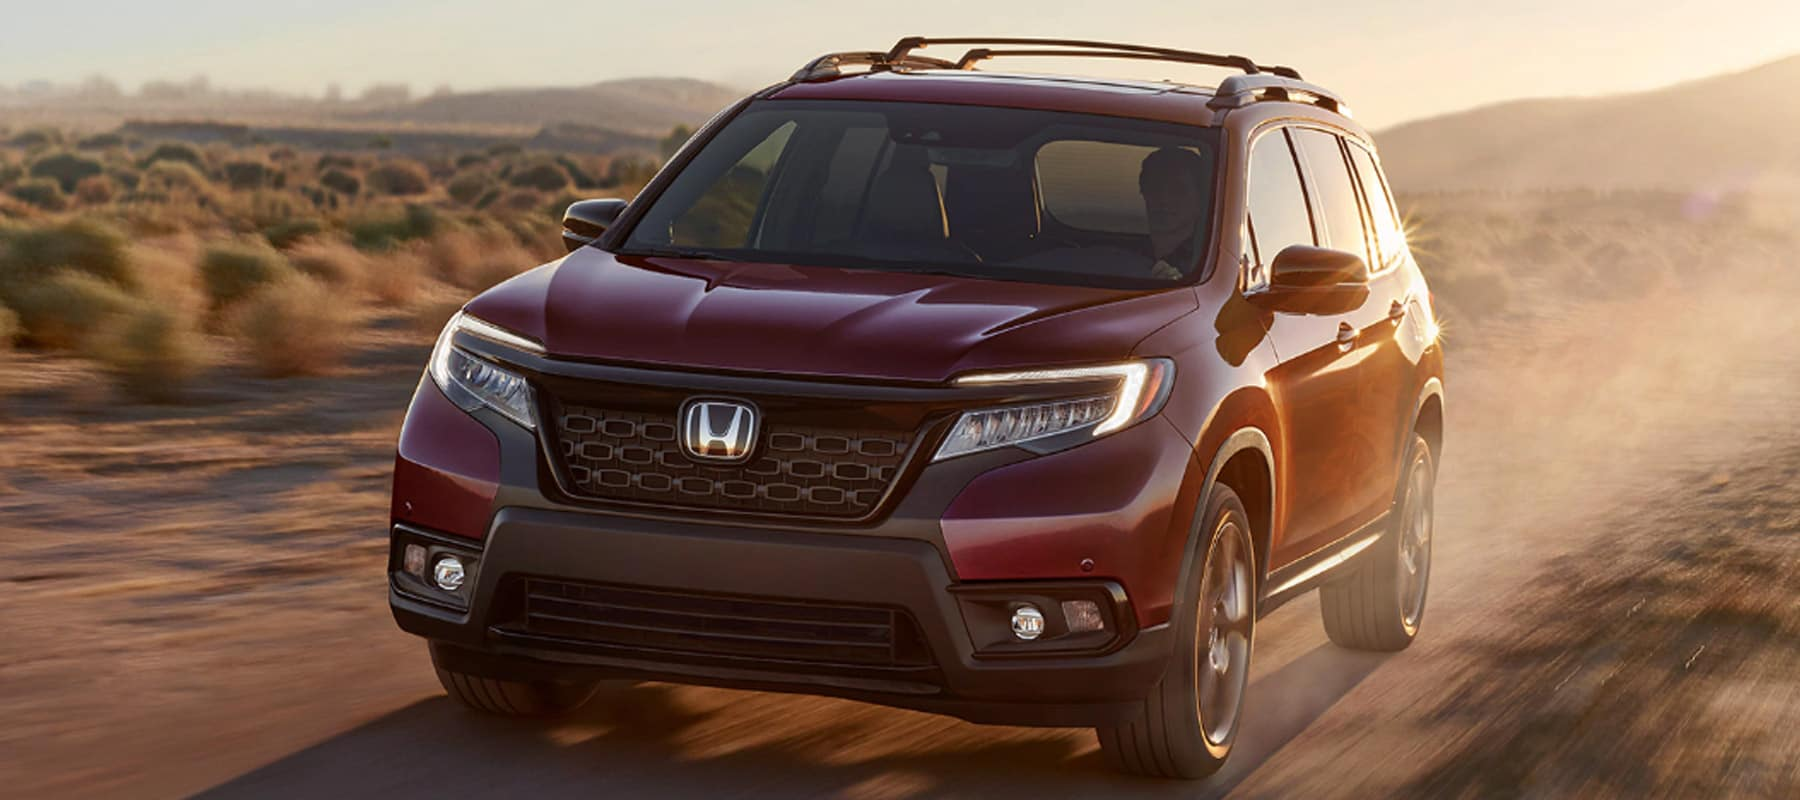 2019 Honda Passport Loyalty and Conquest Program